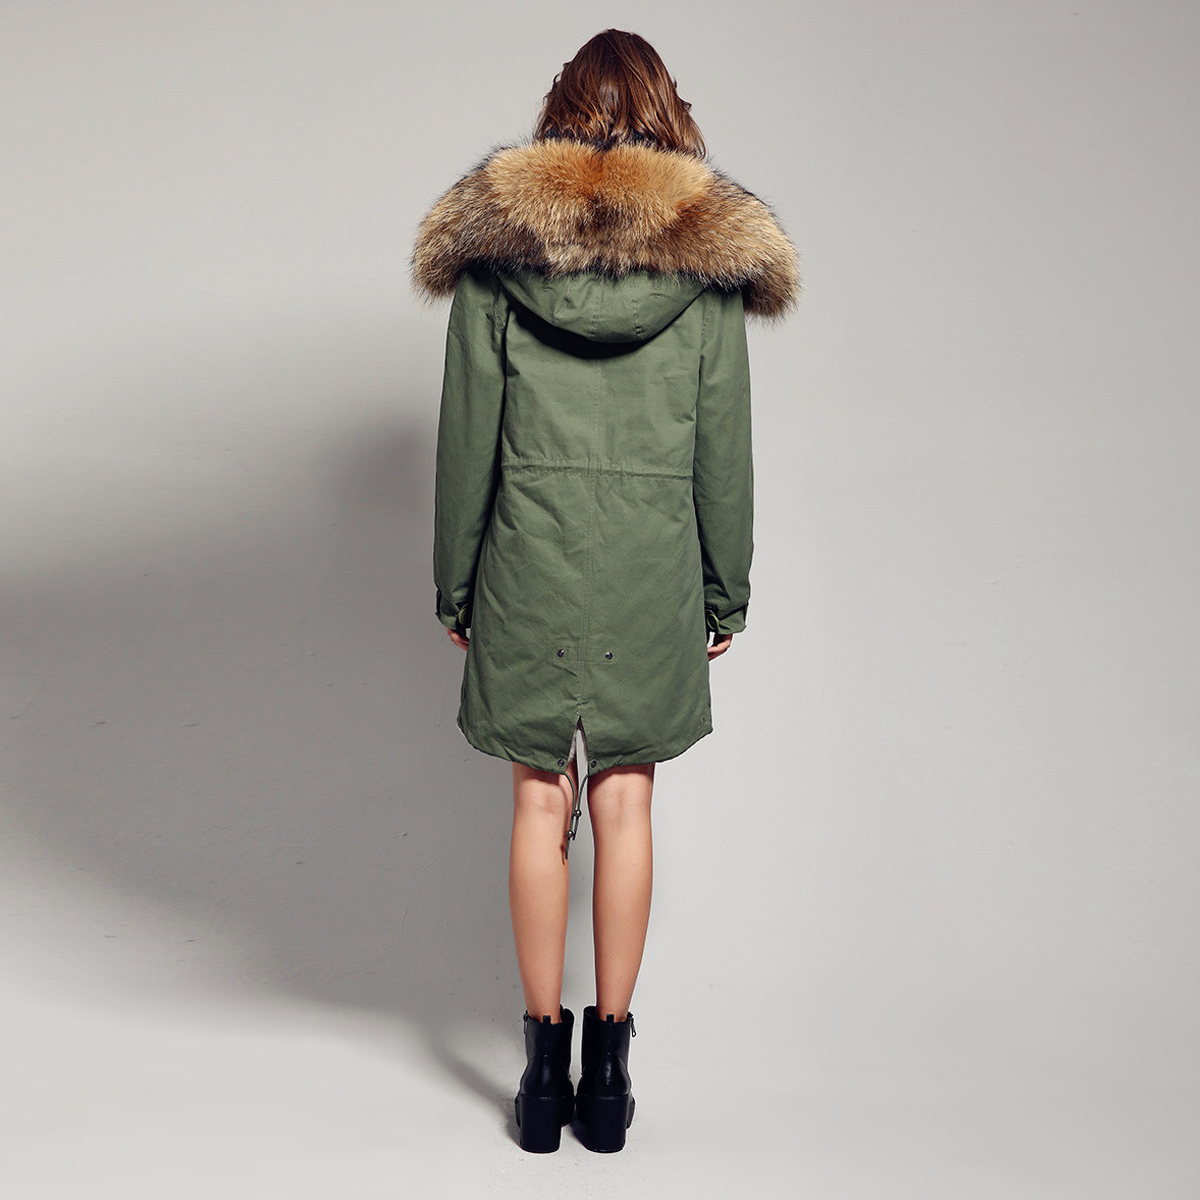 Grand 2 Bordée Color Femmes Capuchon Lapin Parkas 16 3 Fourrure color 16 4 Vert color color color 15 14 color 5 color Raton 1 13 color color Jazzevar Armée 12 11 Naturel color D'hiver Long color 10 color De Manteau 9 Outwear color Veste 8 color color 7 color Laveur color À Mode 6 qRawvgx5I